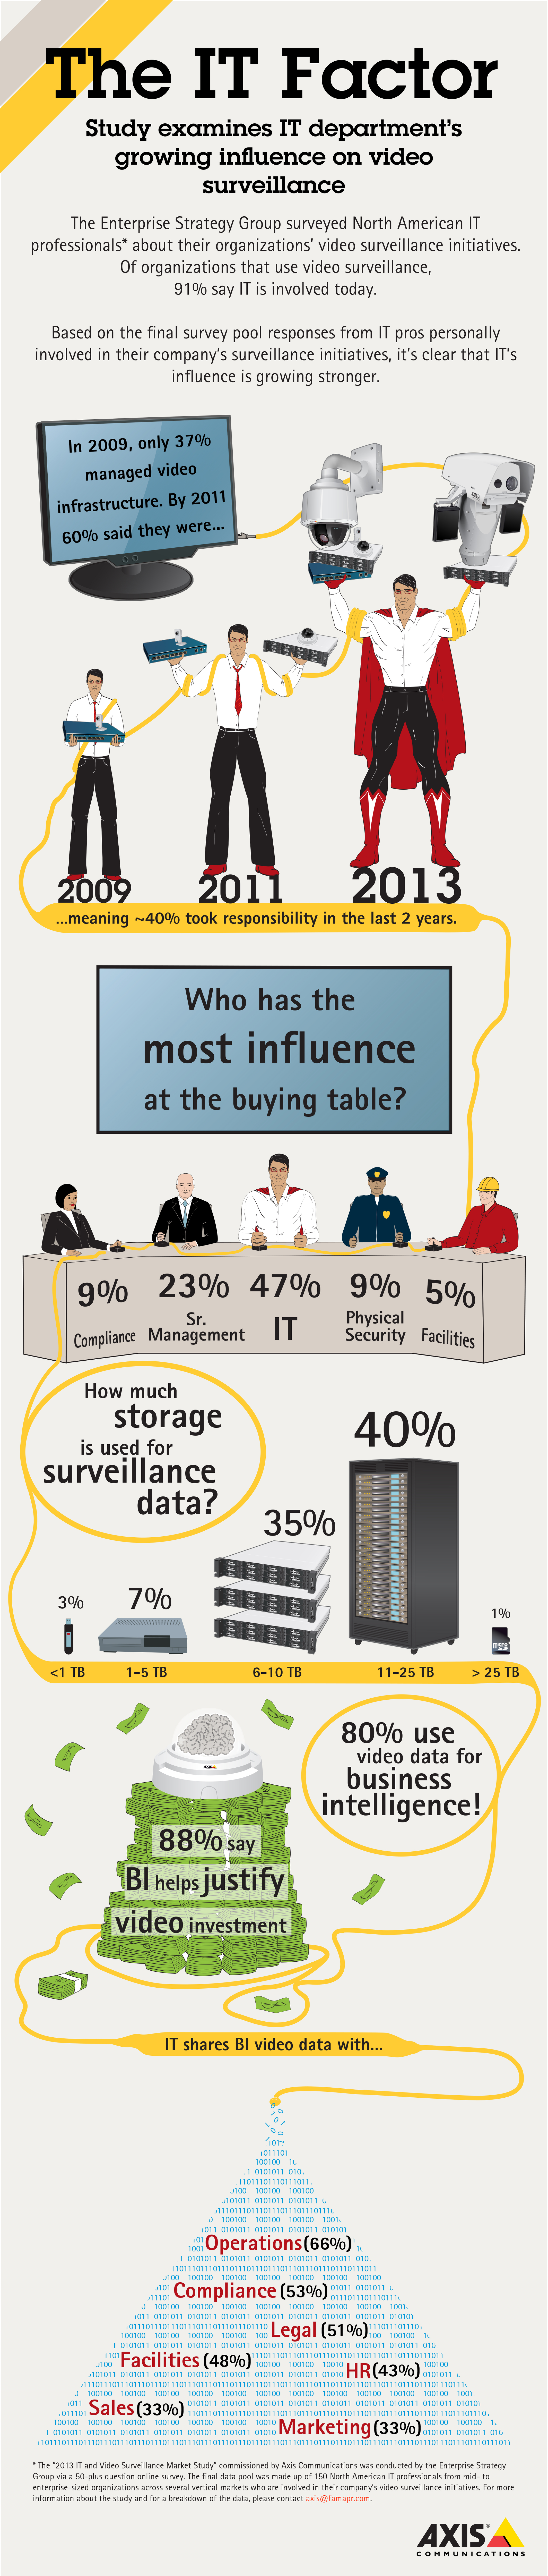 ESG research indicates that IT's increased involvement in video surveillance is a recent trend. As the IT department's influence grows stronger, best practices are starting to emerge. To download a copy of the ESG research brief and view the infographic, please visit http://www.axis.com/itvideo/it_factor.htm. (Graphic: Business Wire)